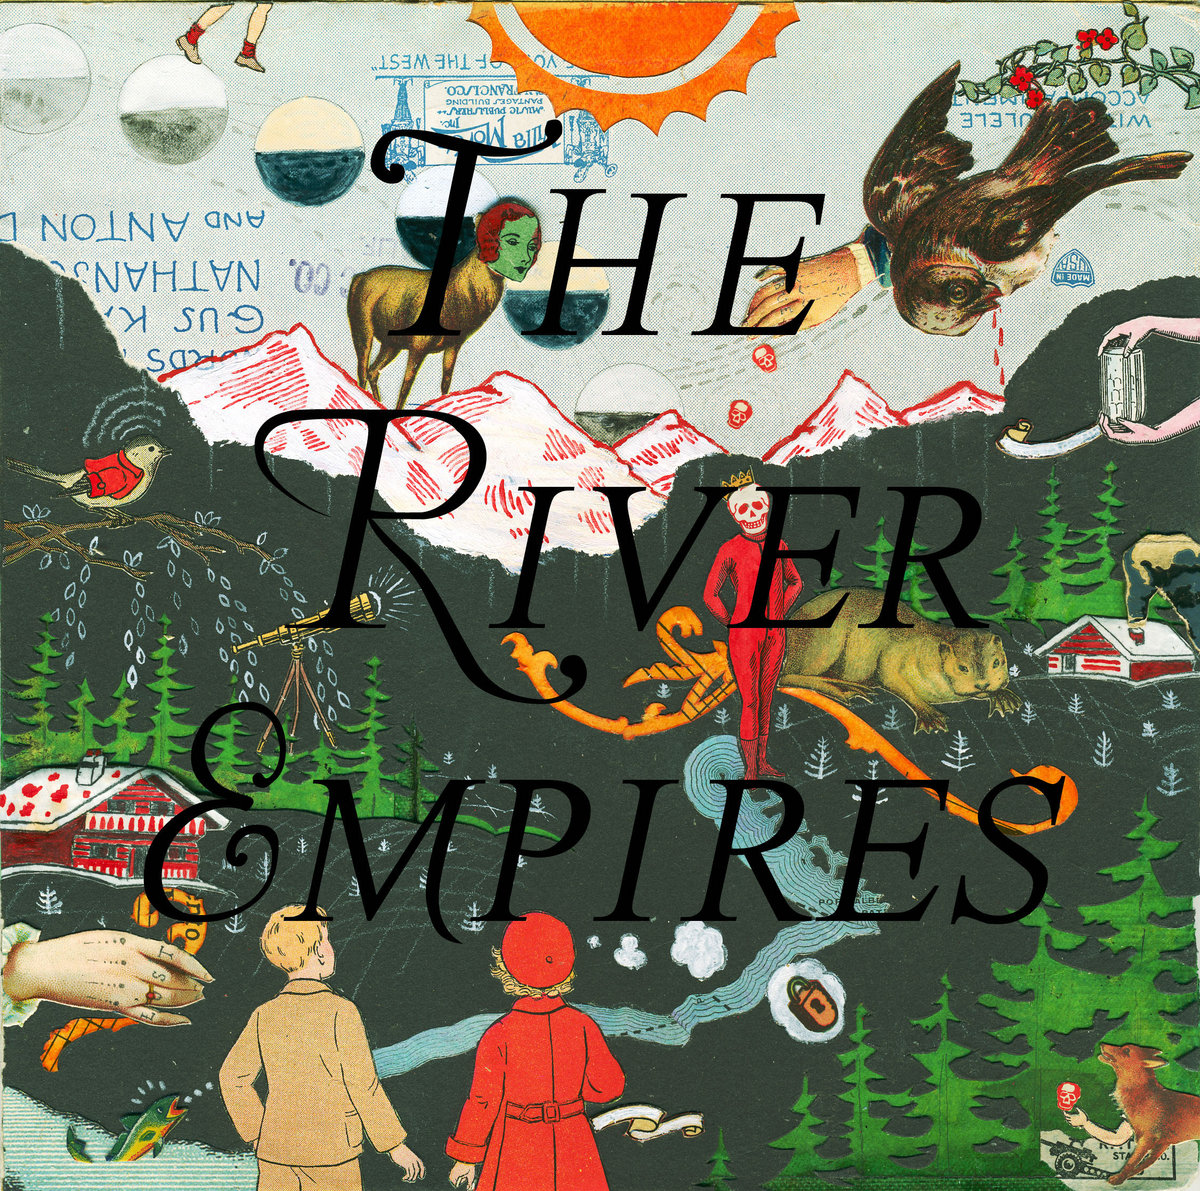 The River Empires